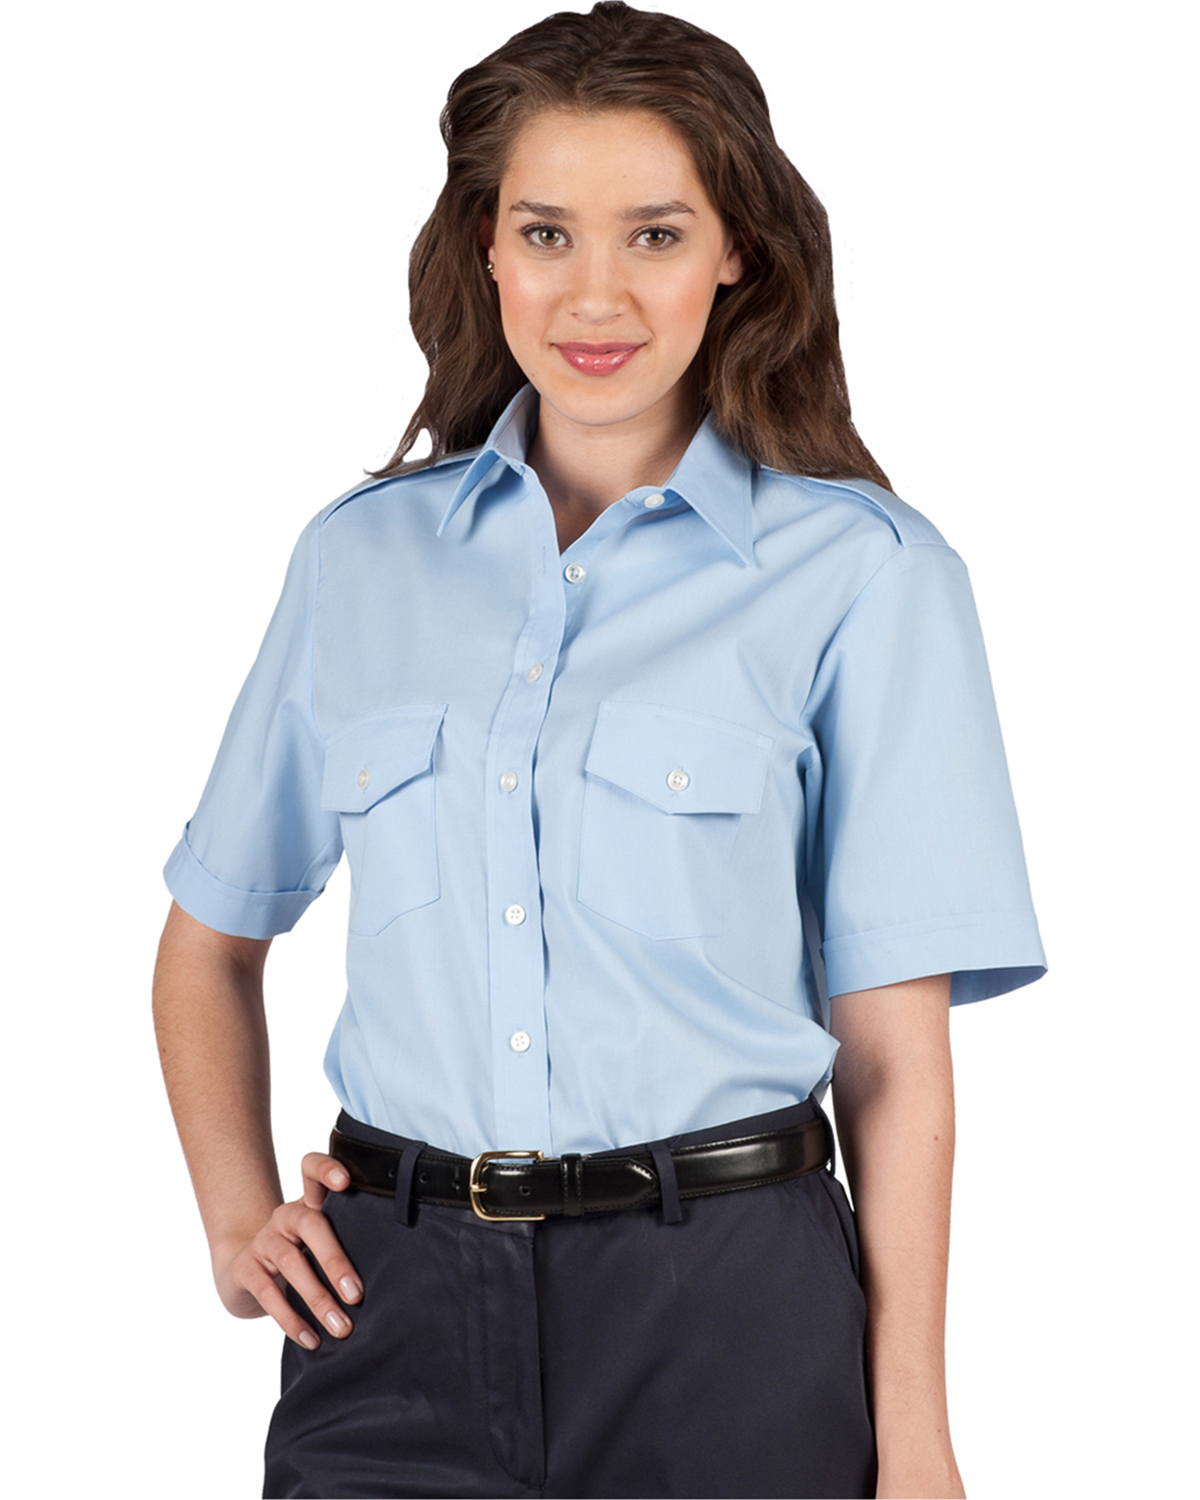 Edwards 5212 Women's Traditional Collar Navigator Poplin Short-Sleeve Shirt at GotApparel